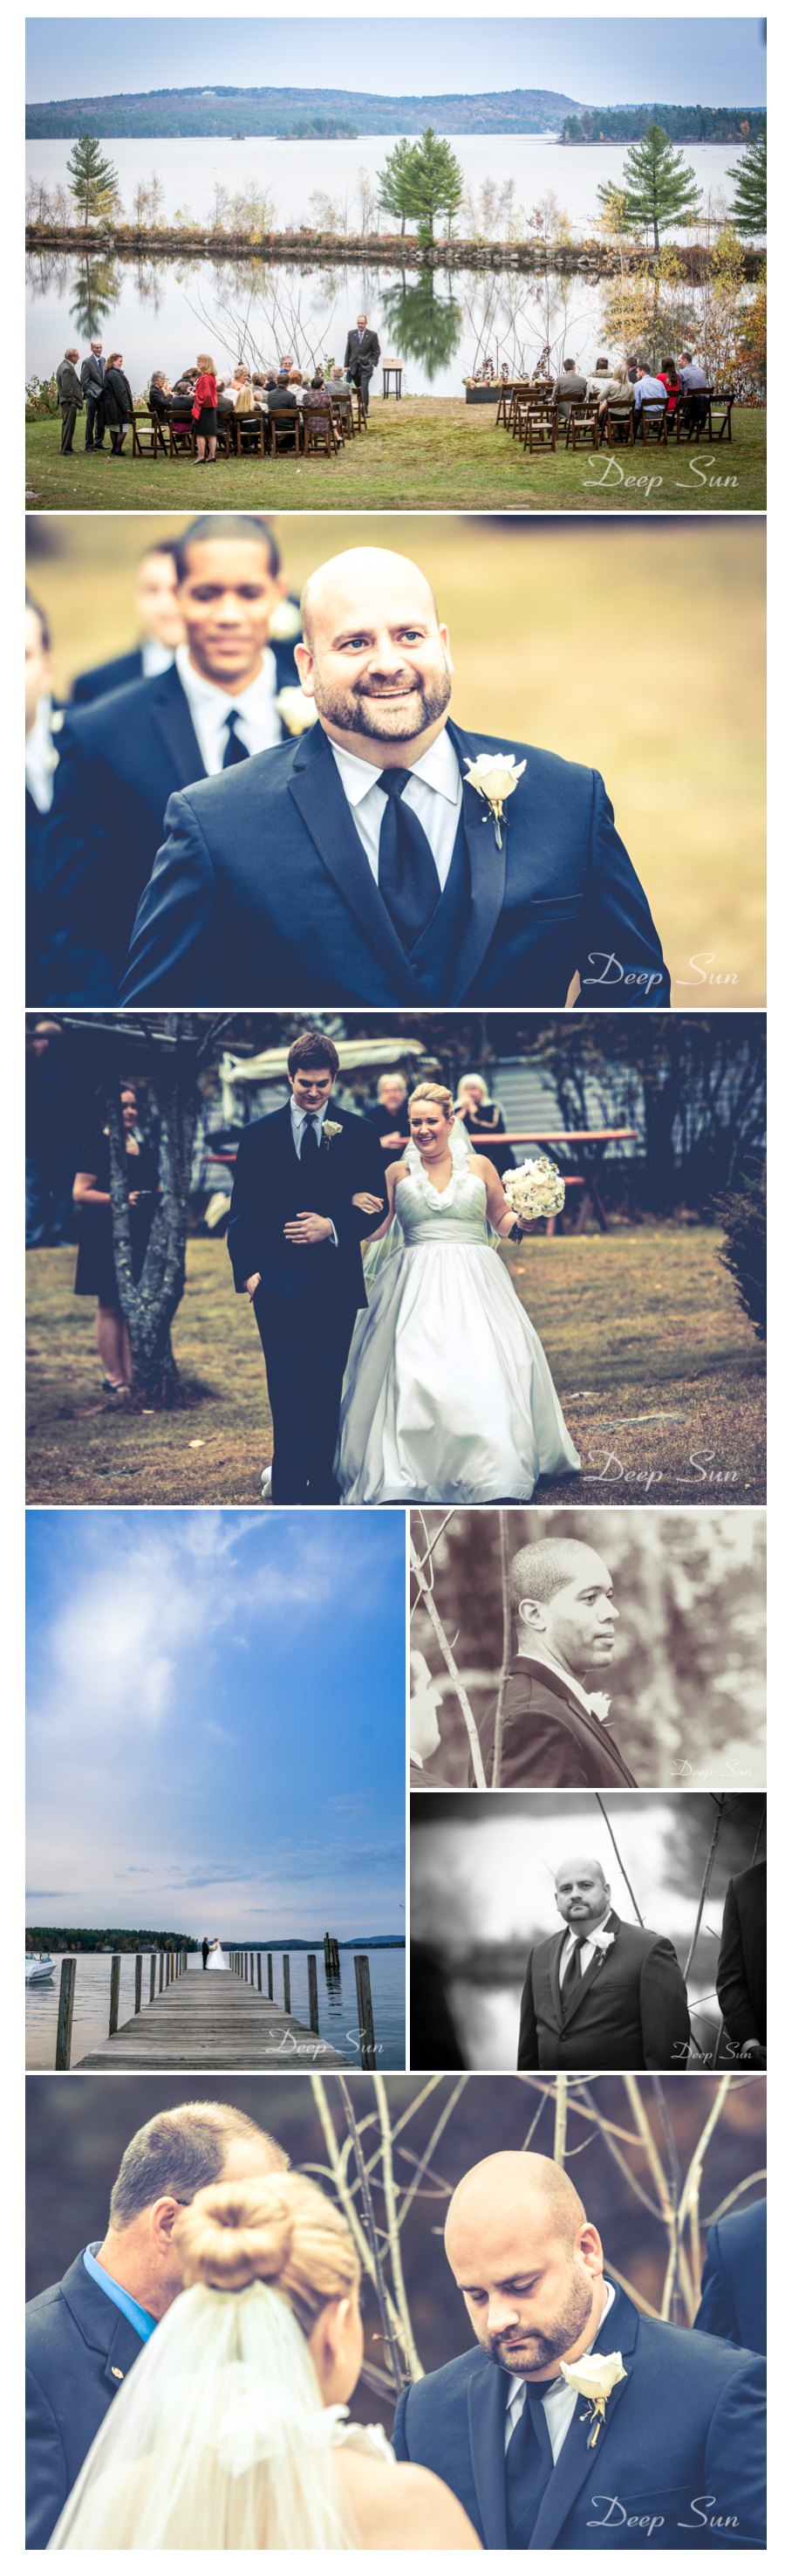 dee-sun-photography-new-hampshire-wedding-2